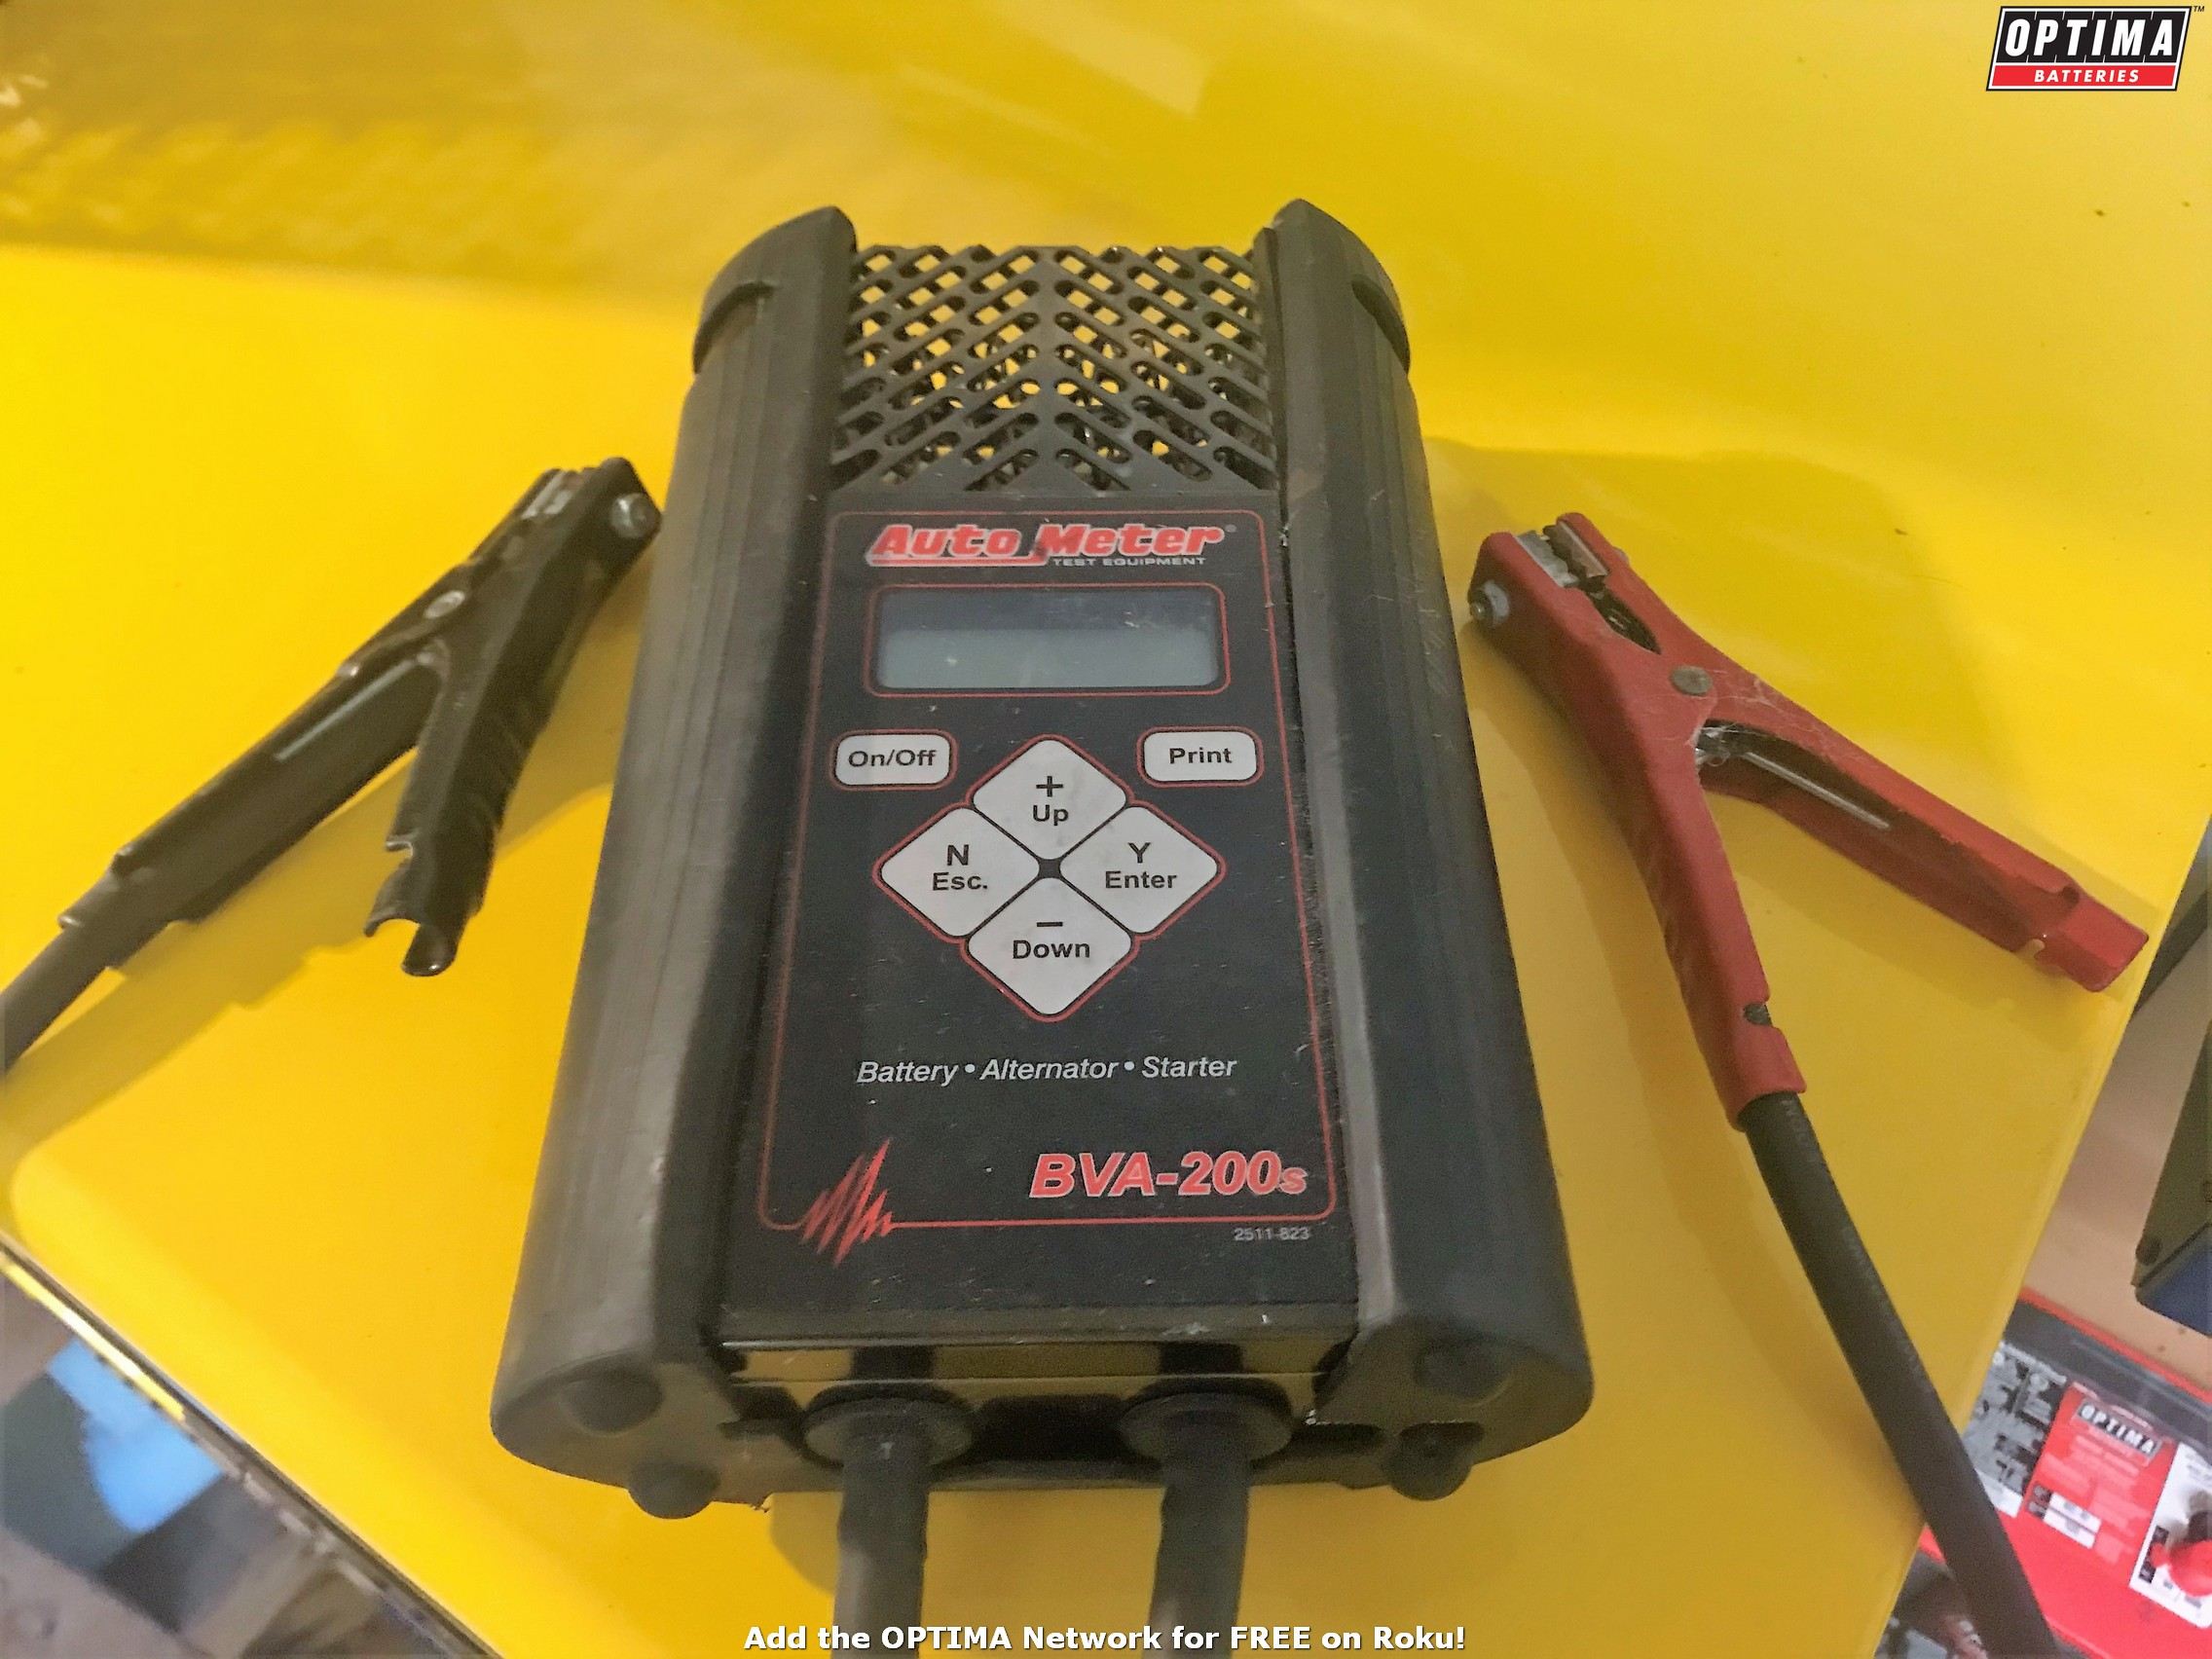 We'll tell you the best way to figure out if your battery needs to be replaced